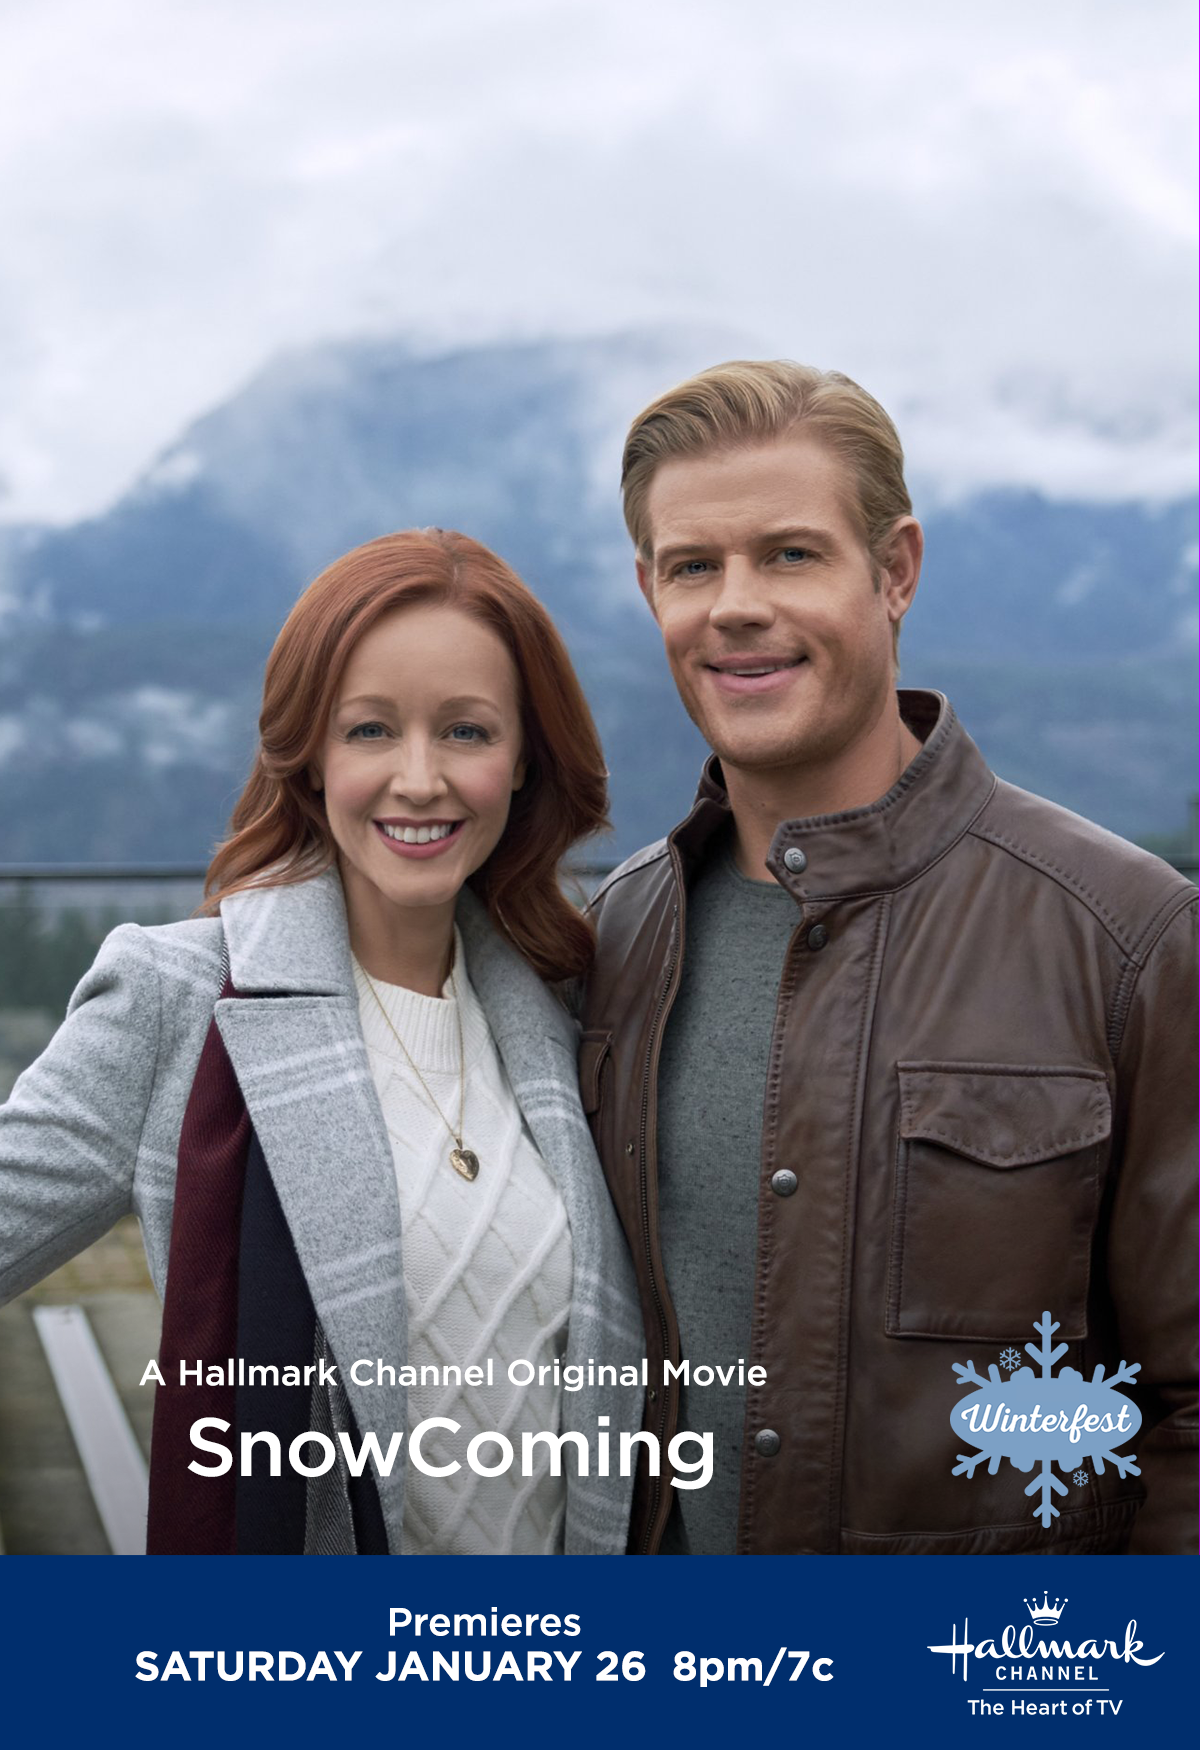 Hallmark favorites Lindy Booth and Trevor Donovan share